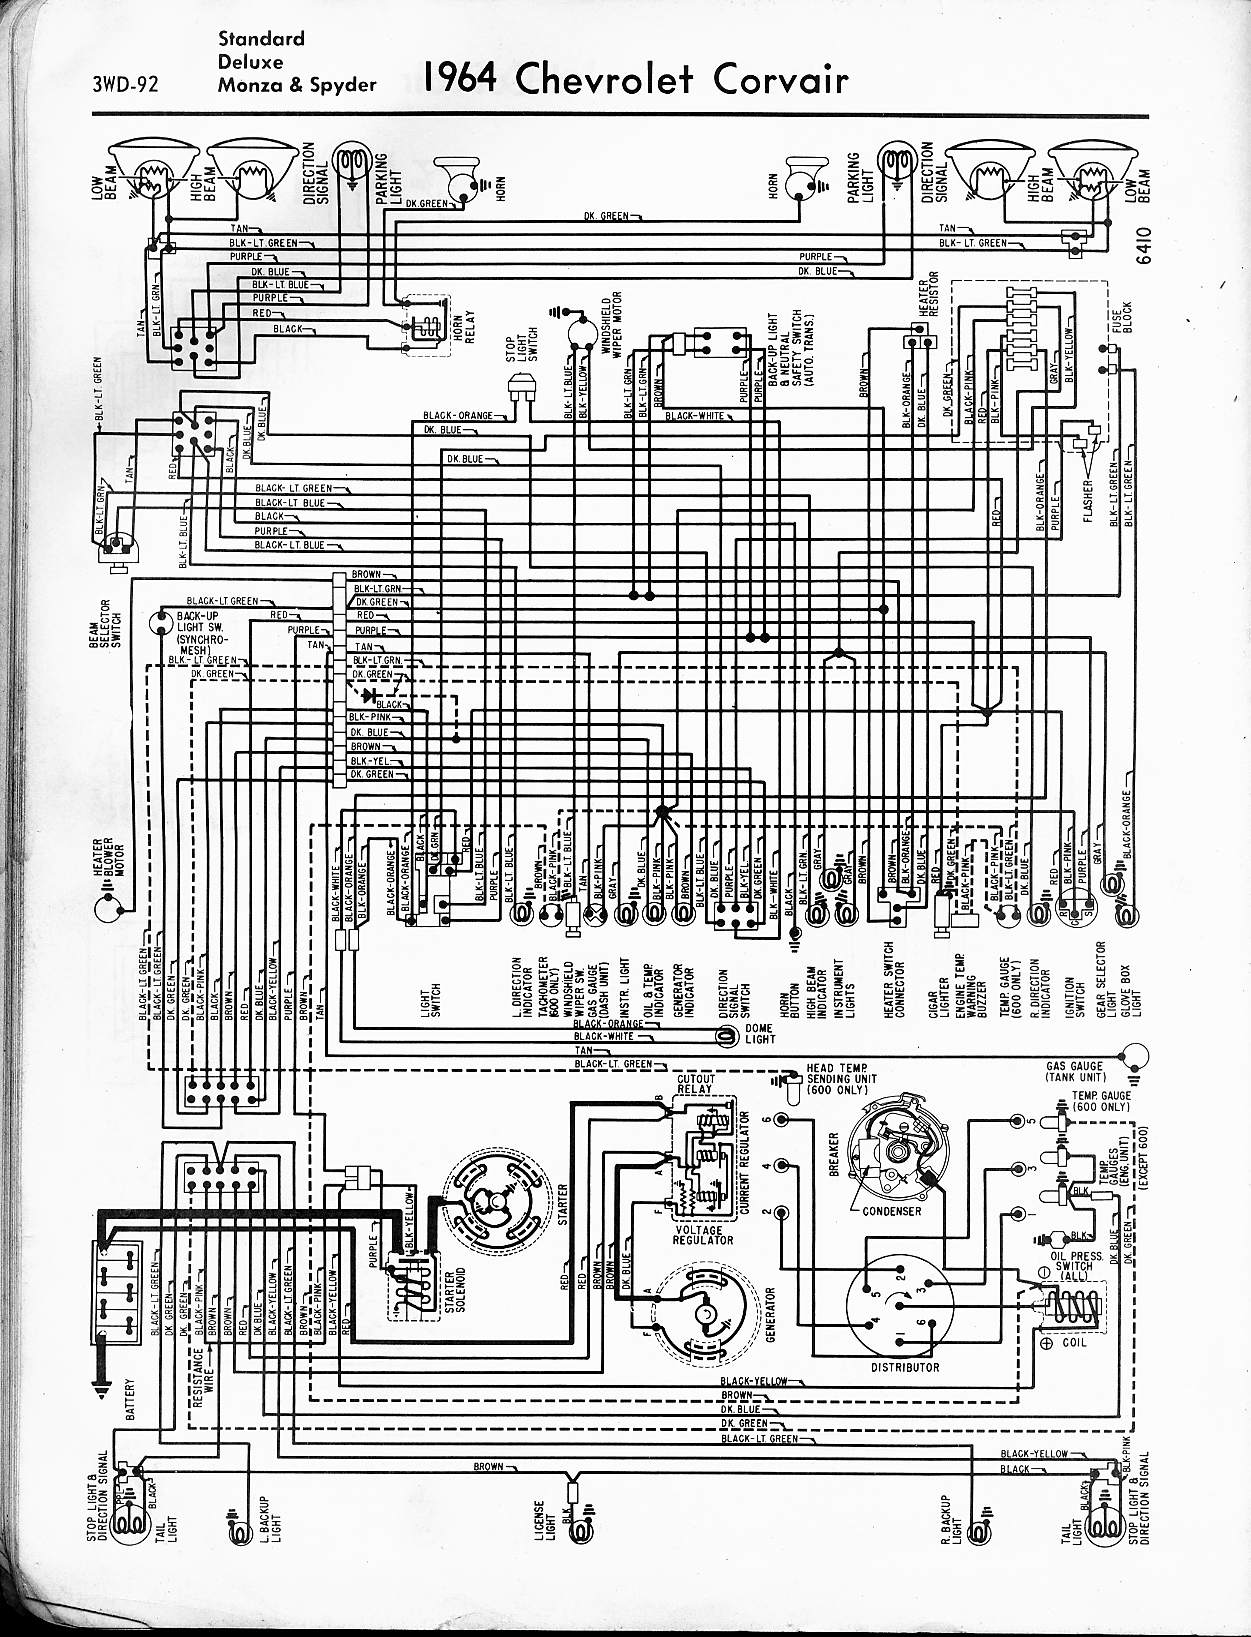 wrg 5951 1970 camaro dash wiring diagram ignition. Black Bedroom Furniture Sets. Home Design Ideas